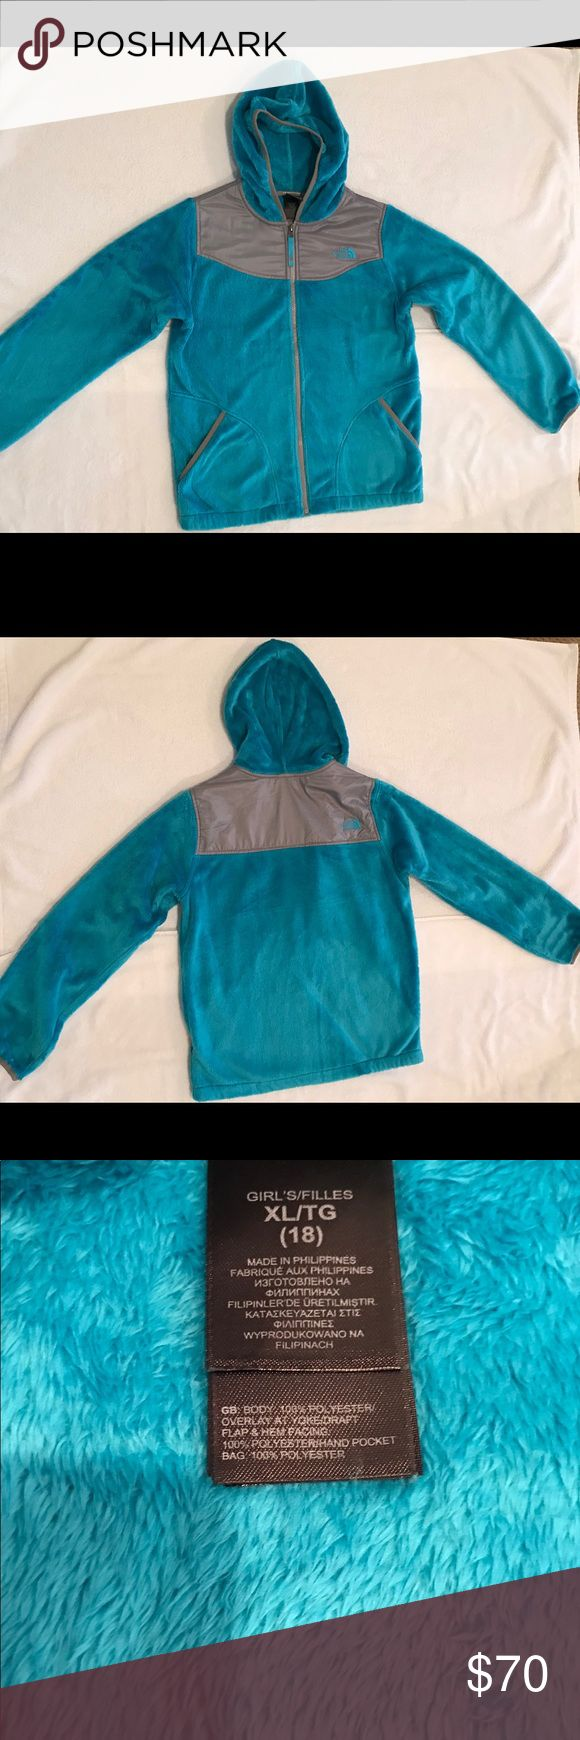 Girls North Face Oso fluffy hooded jacket Girls North Face jacket with hood. Soft, warm and cozy. Excellent condition. Turquoise and Gray, size XL 18 North Face Jackets & Coats